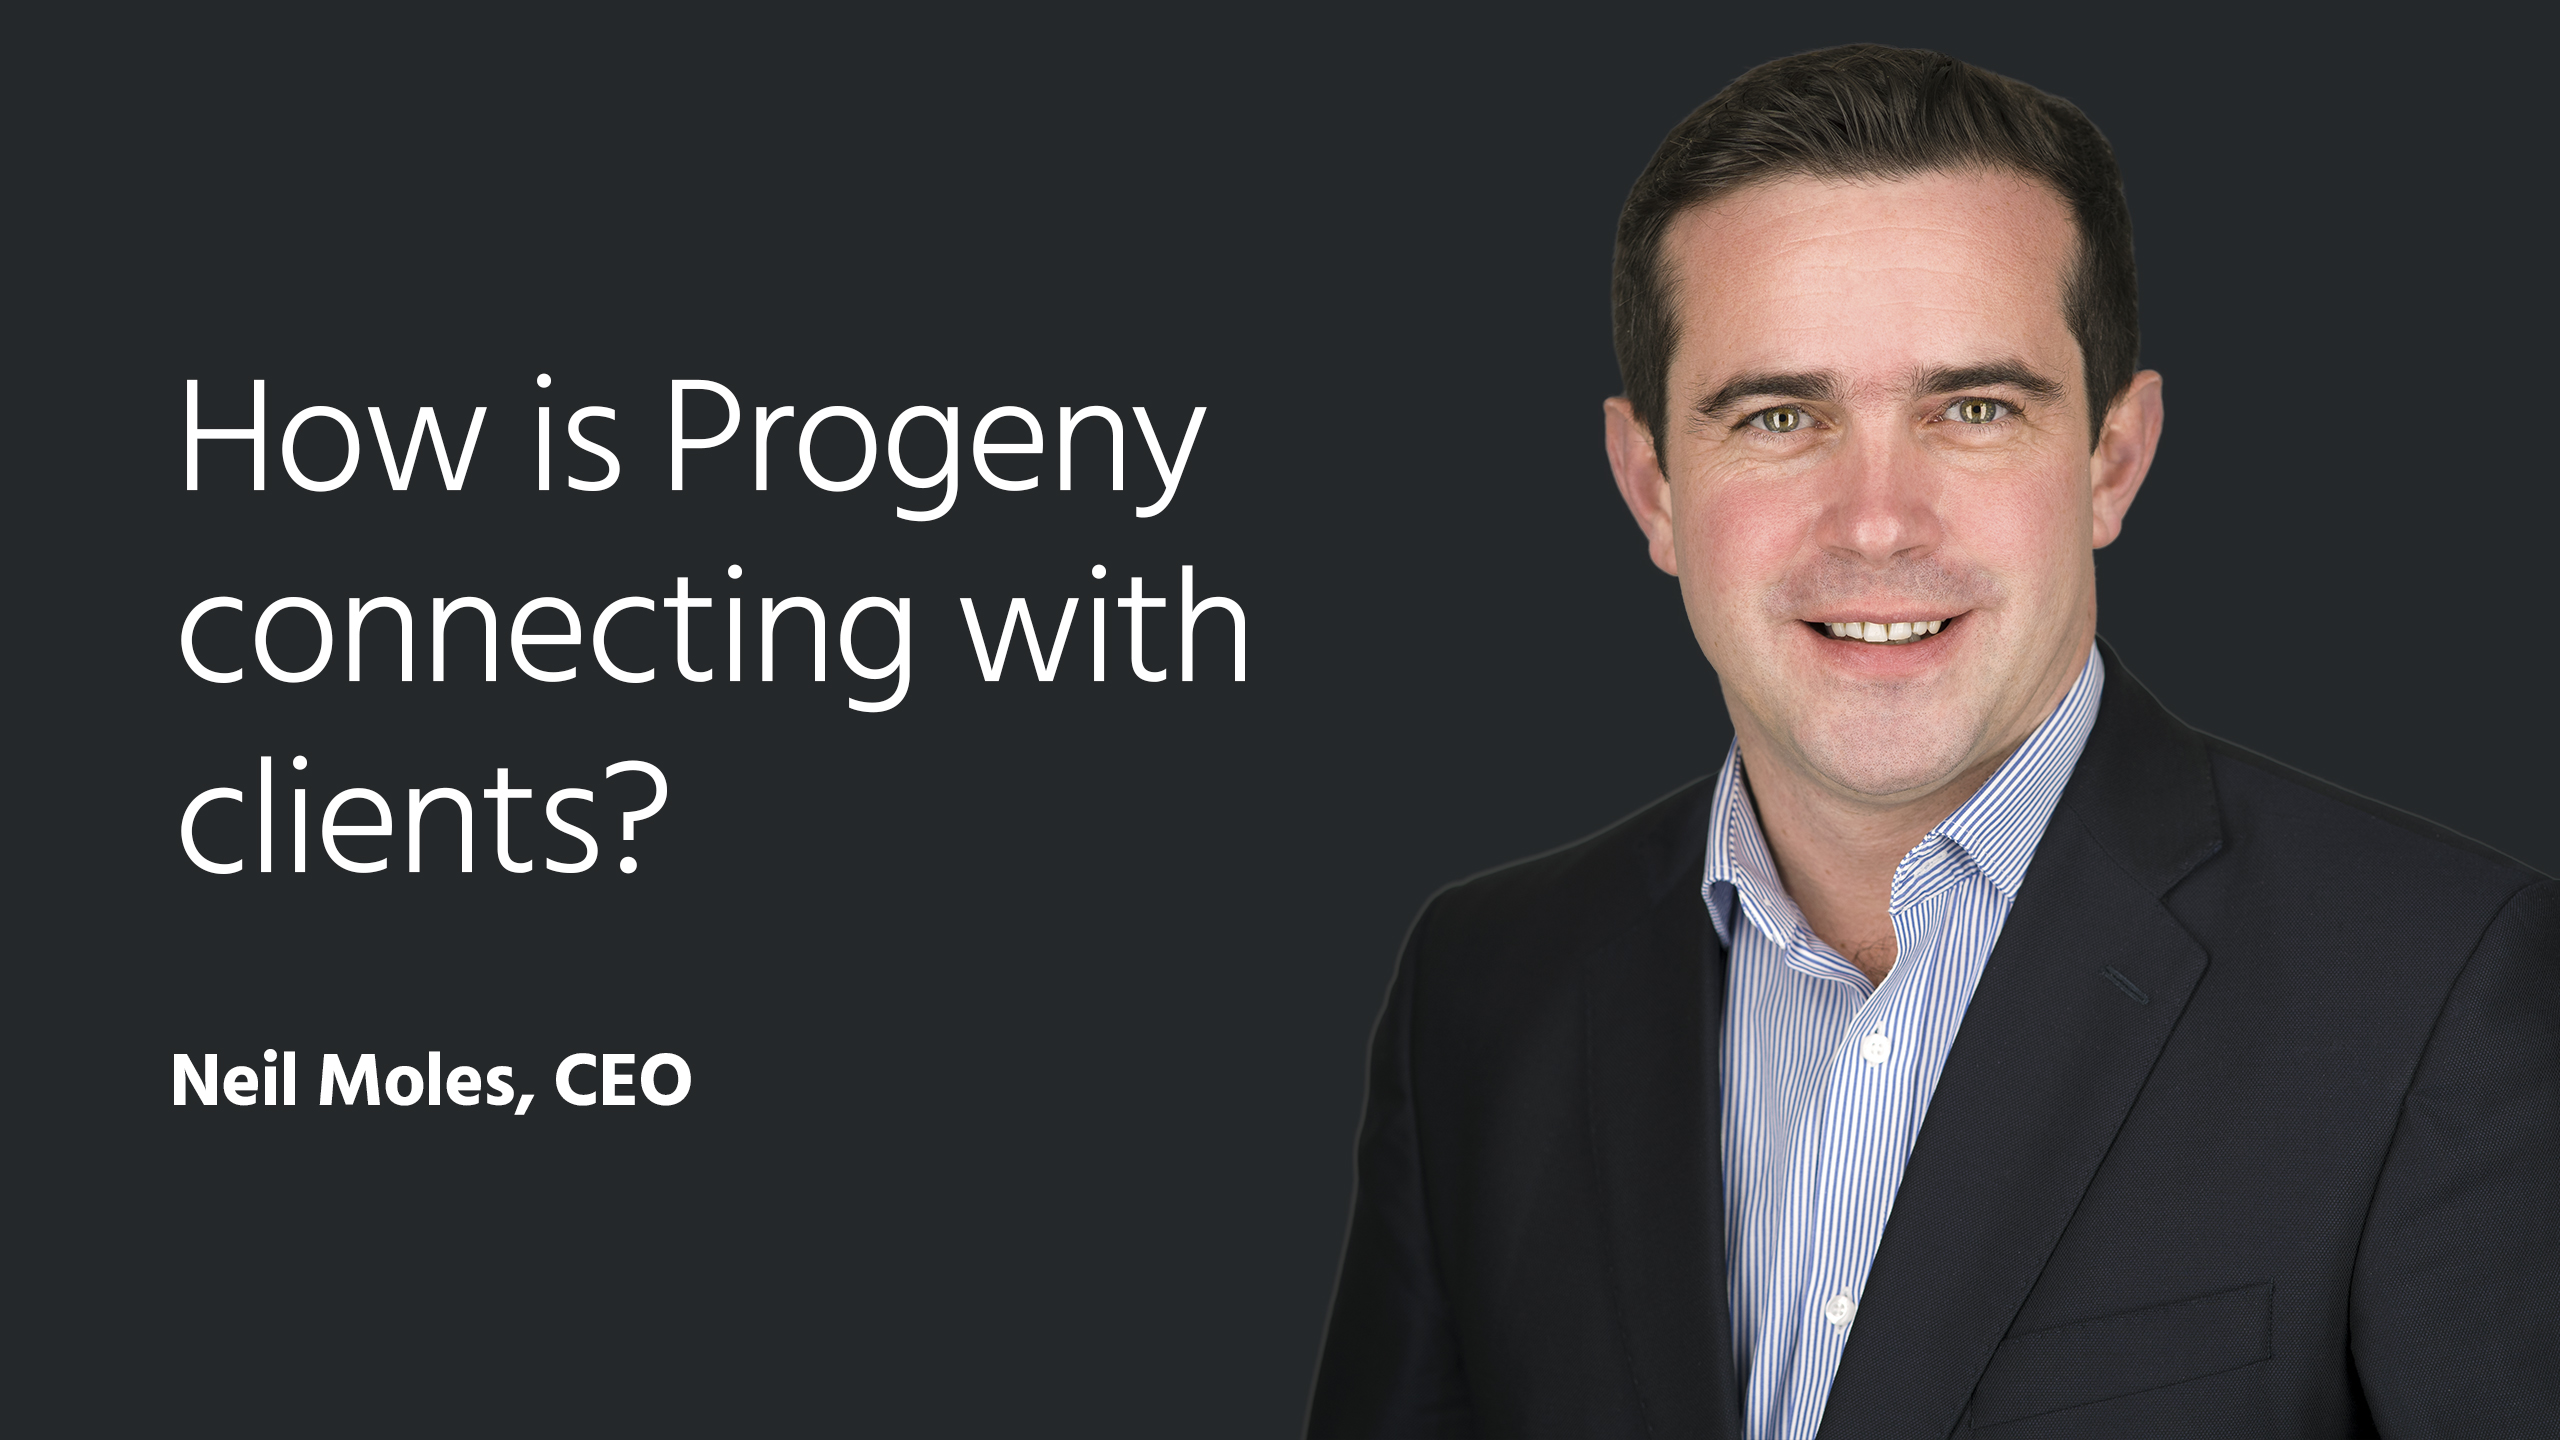 How is Progeny connecting with clients? Neil Moles, CEO